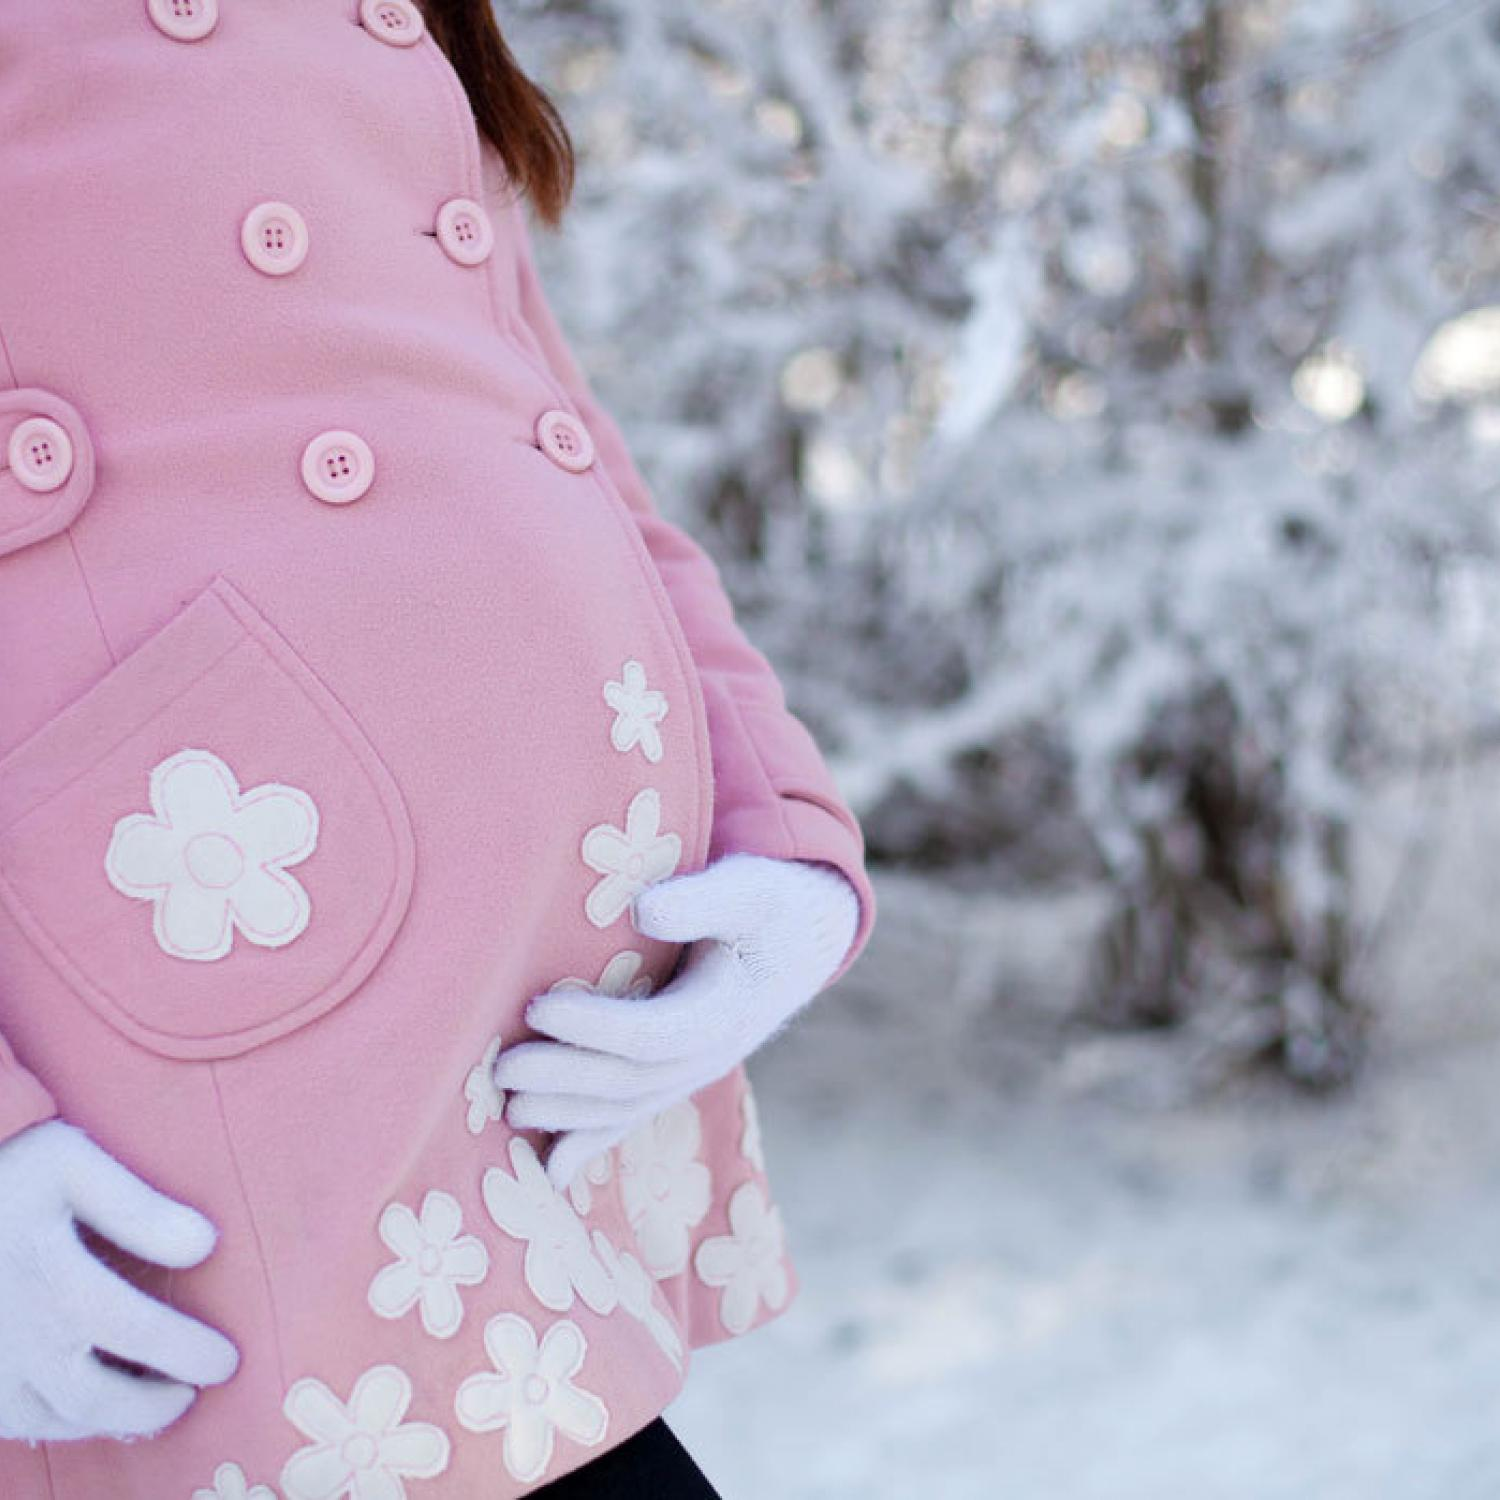 Baby Its Cold Outside Winter Baby Shower Ideas Parenting